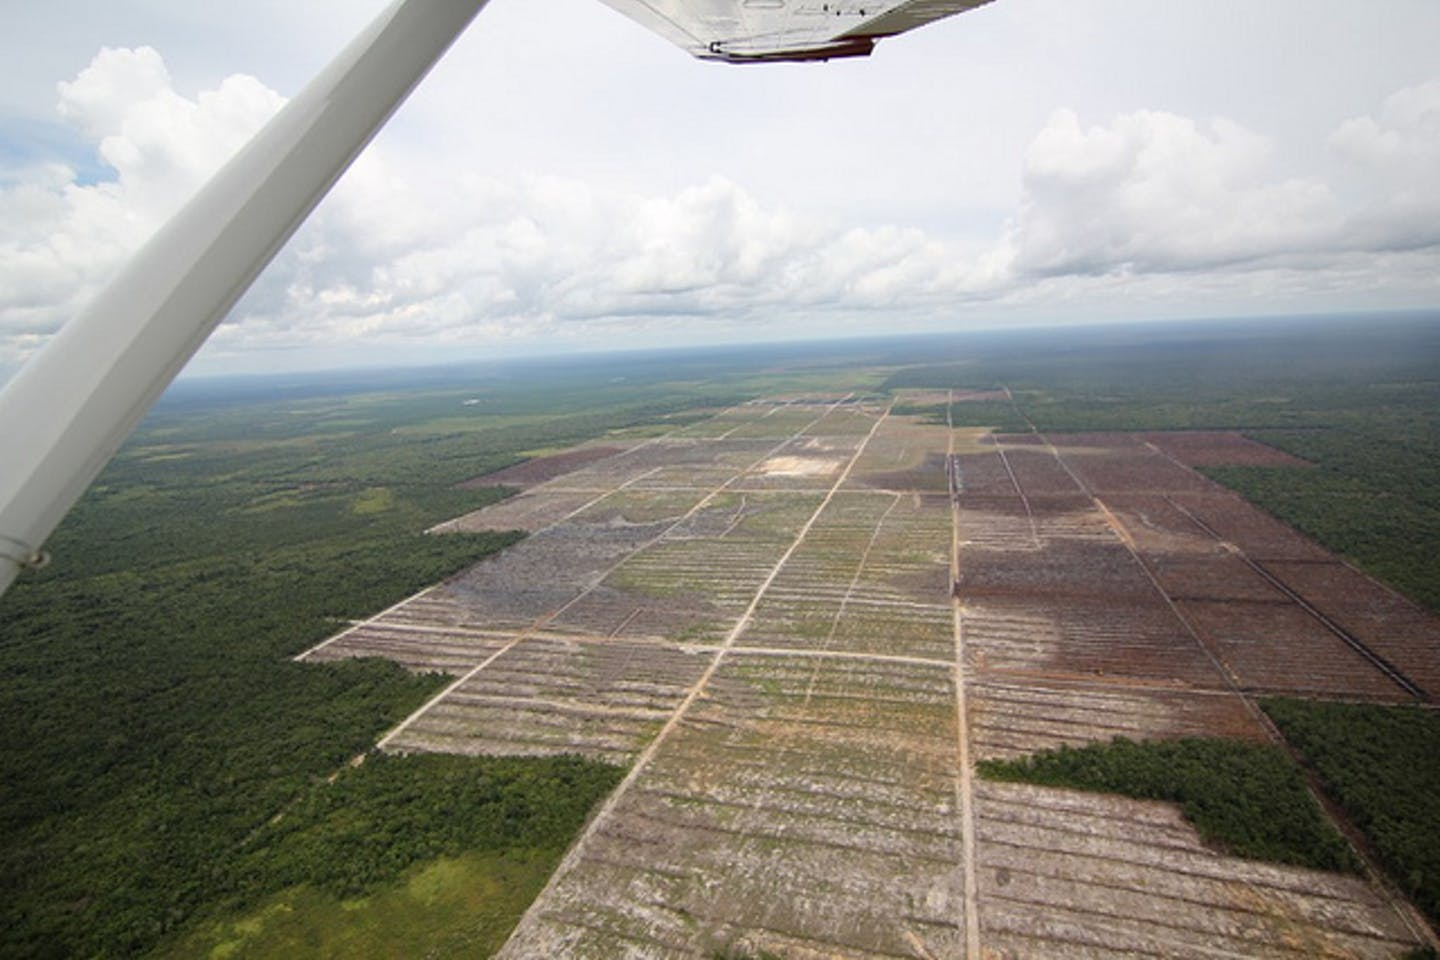 peatland deforestation in Borneo